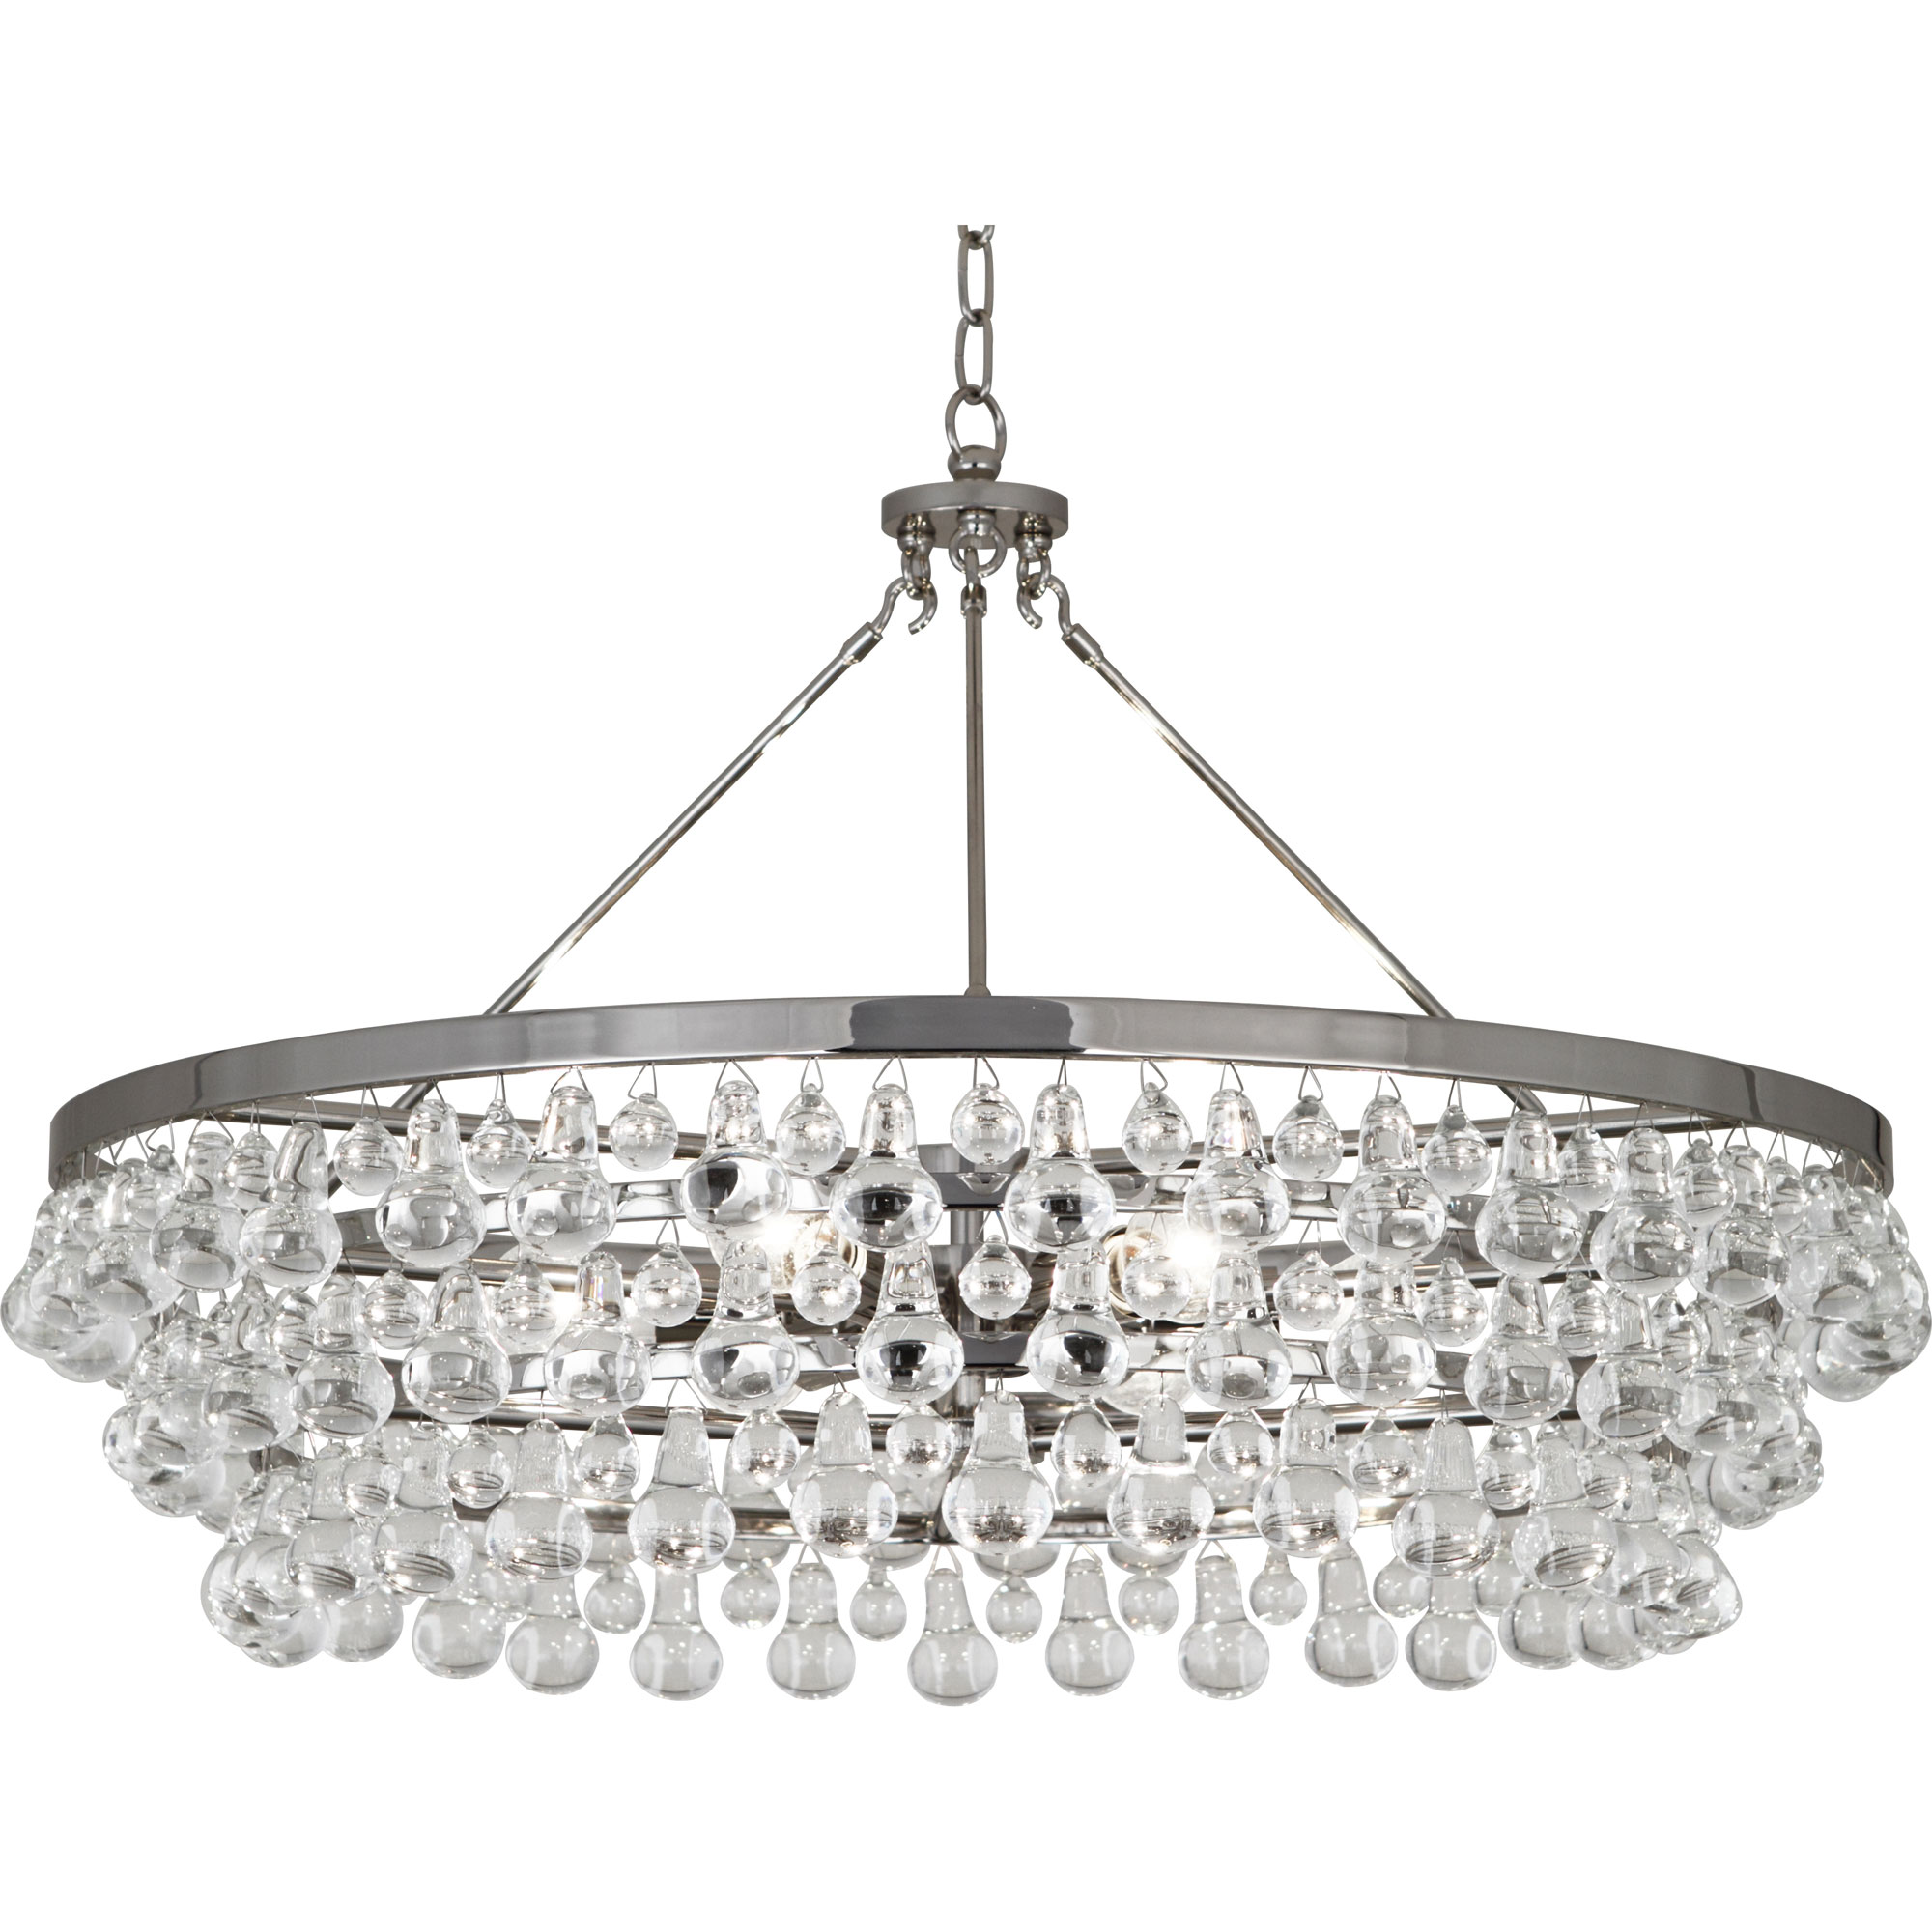 product shipping alturas gull today home overstock chandelier garden free brushed lights sea nickel